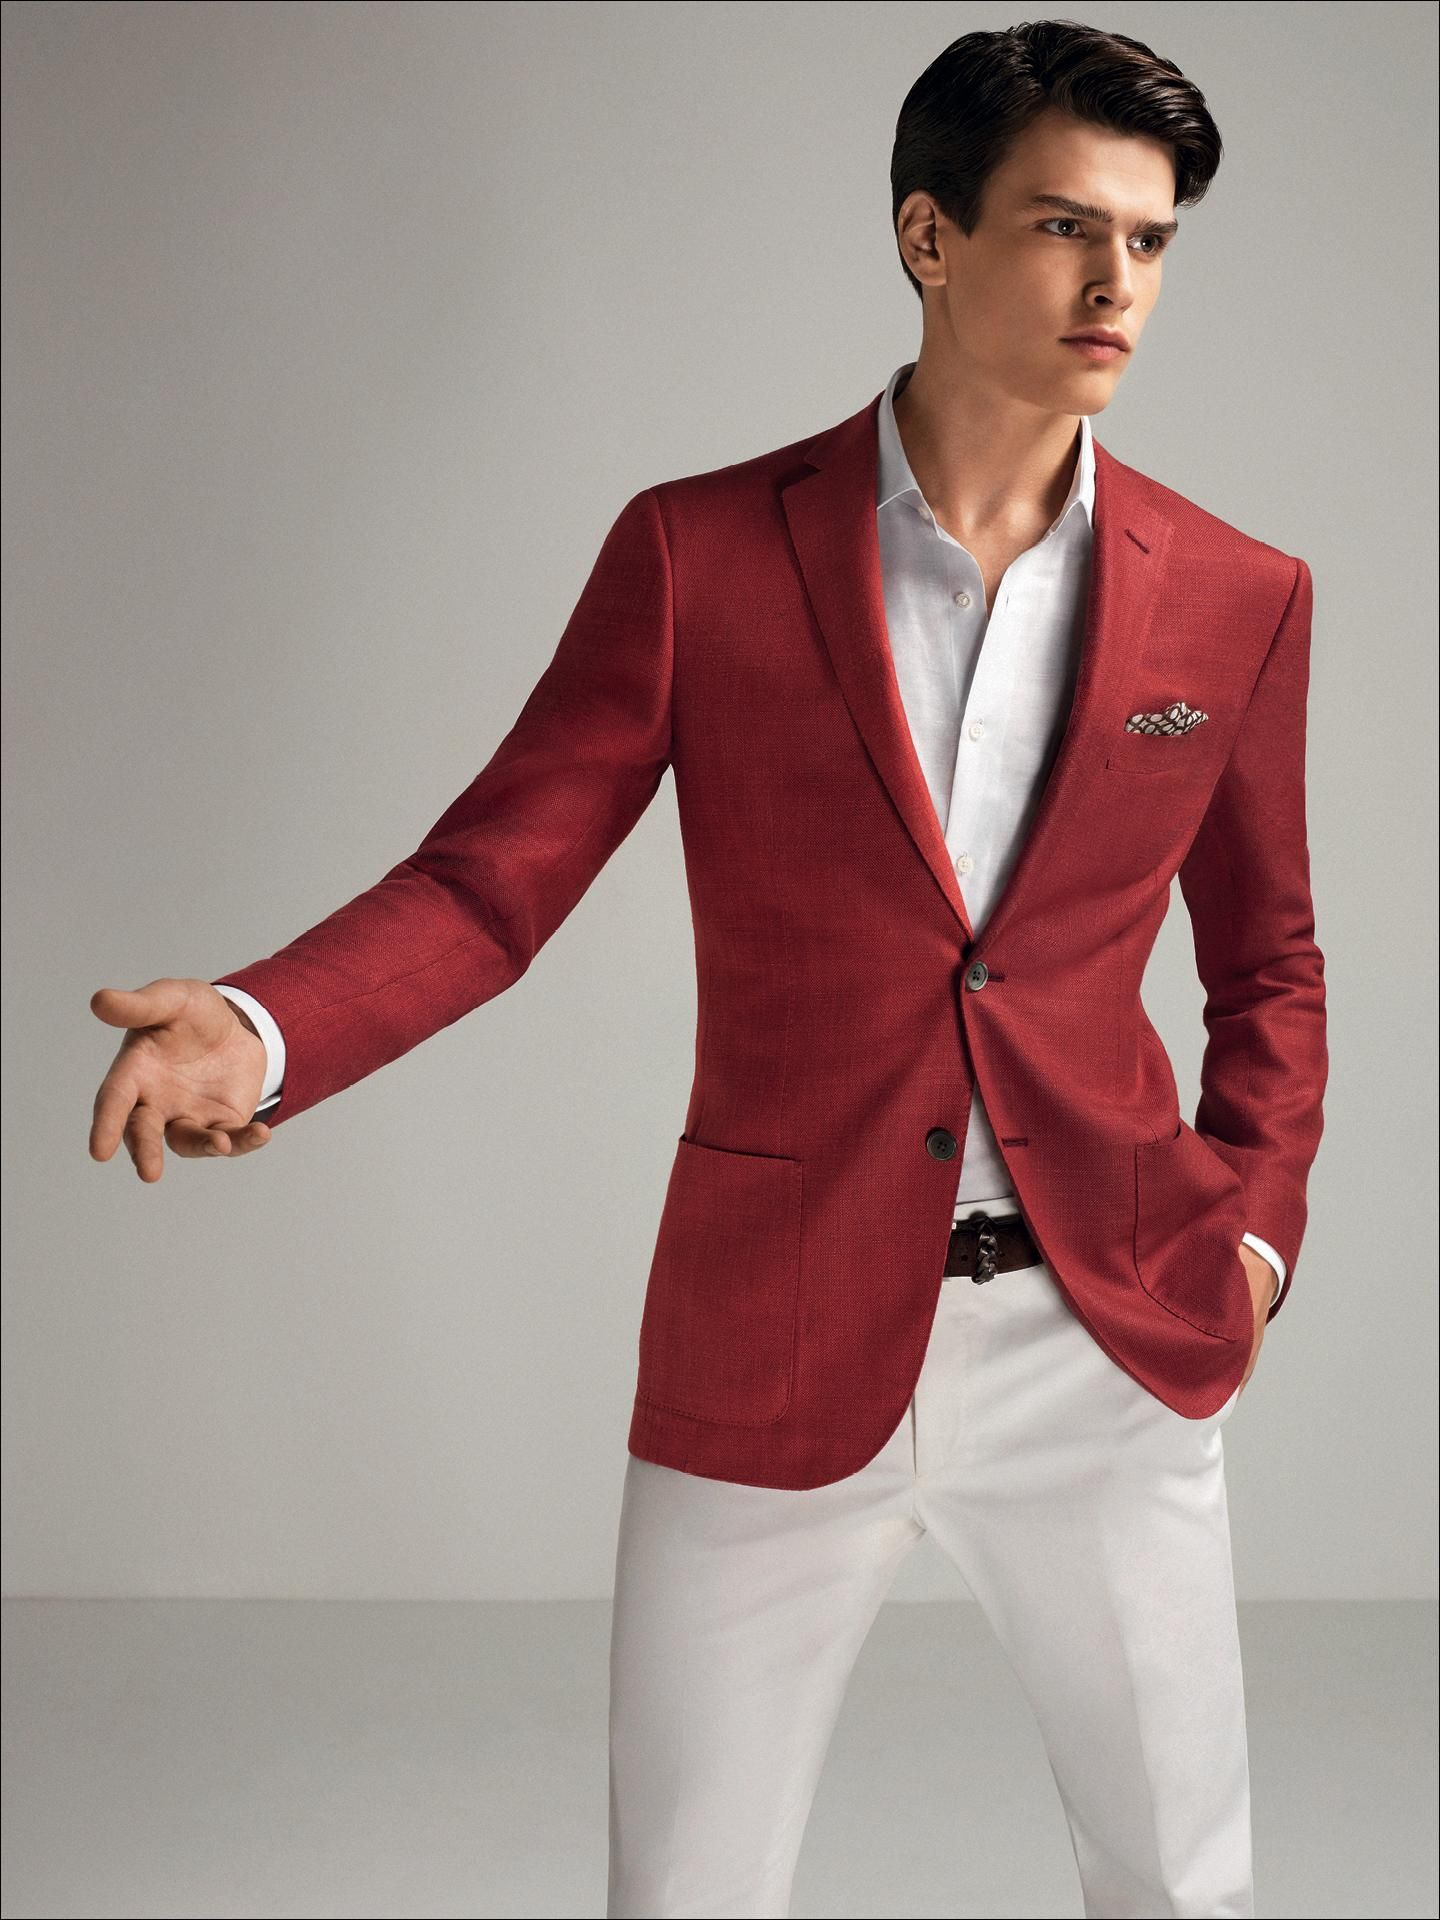 Jacket Man Silk Wool Panama Ss15 Spring Summer 2015 Collection Corneliani Fashion Mens Suits Mens Fashion Maroon Blazer